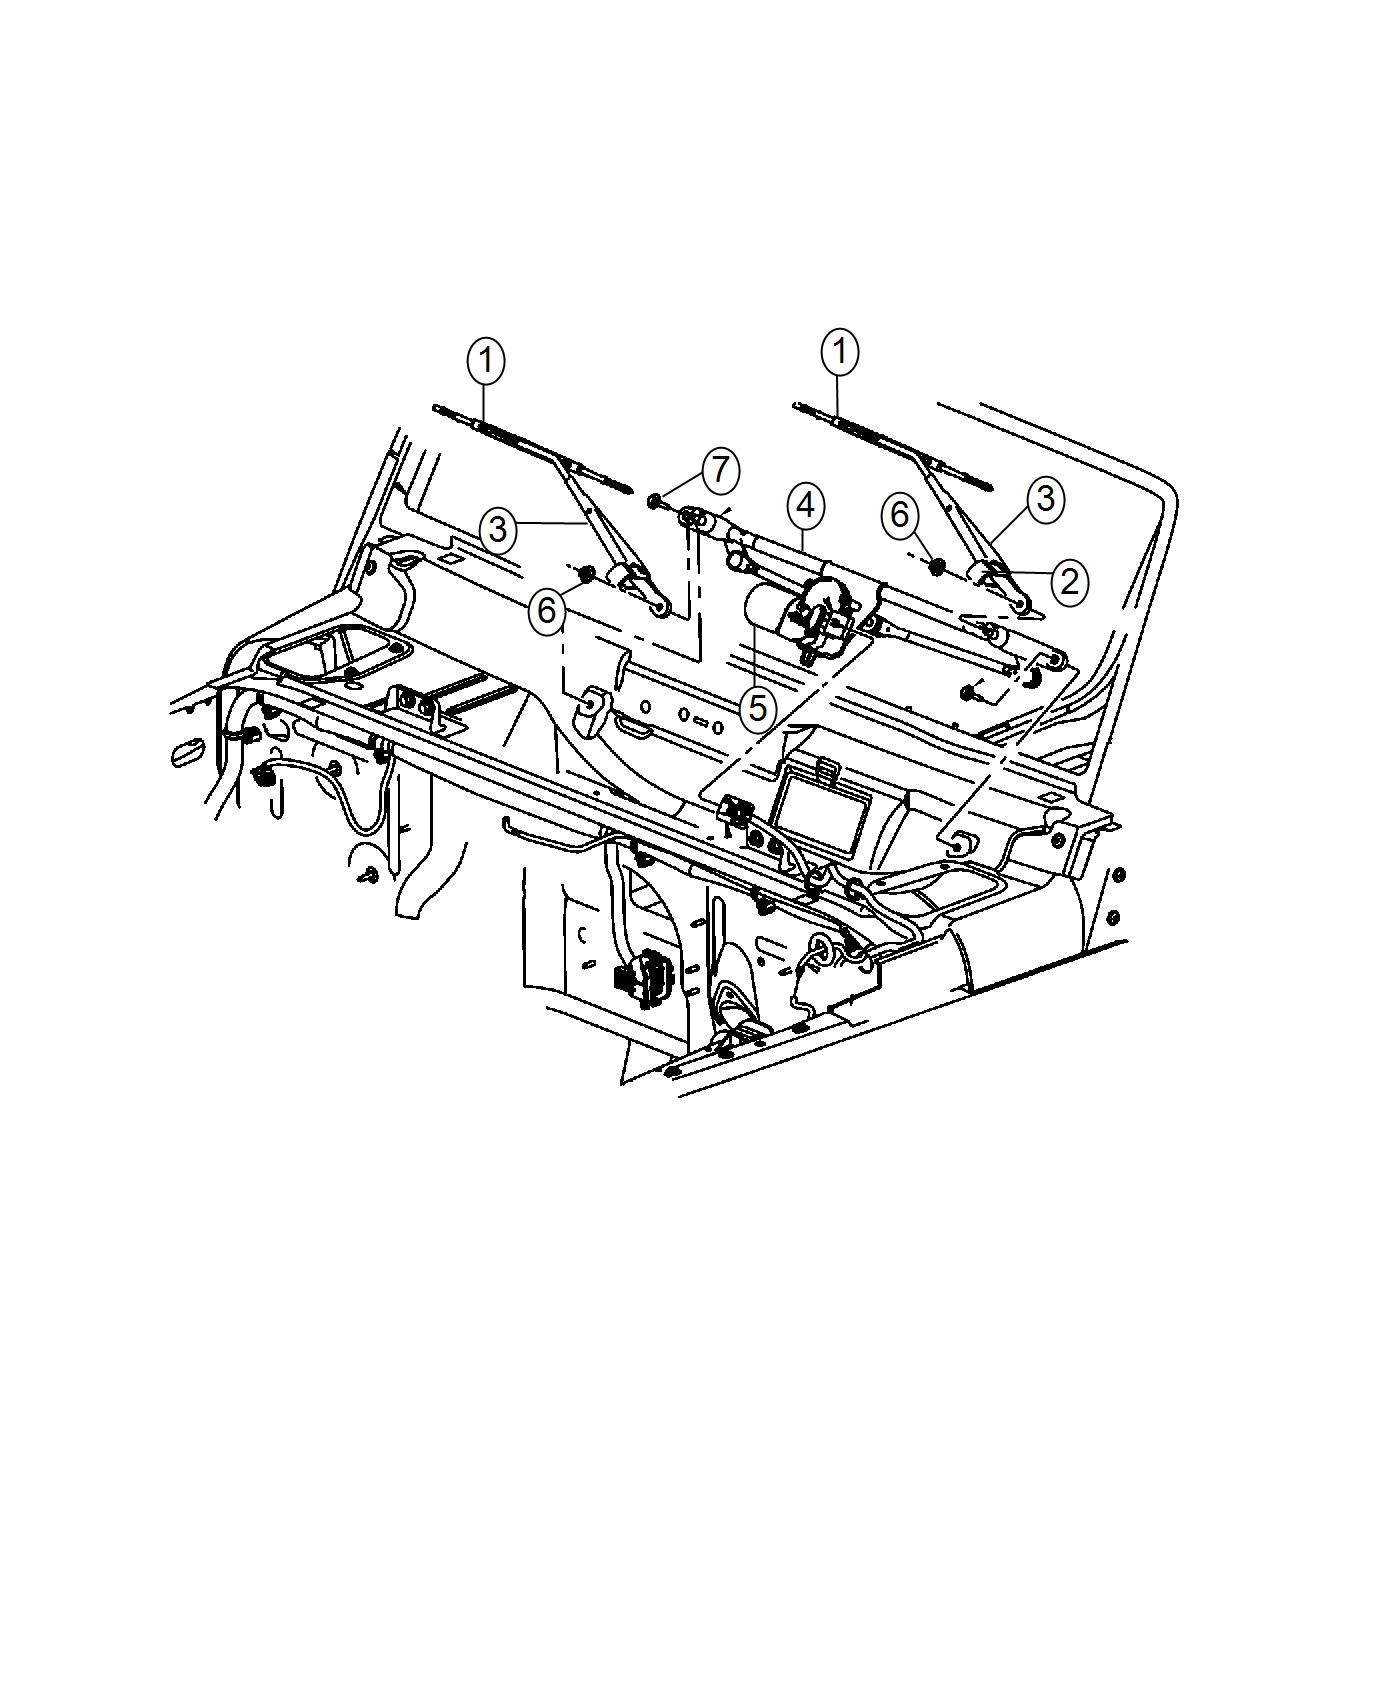 2020 Jeep Wrangler Used for: MOTOR AND LINKAGE. Windshield